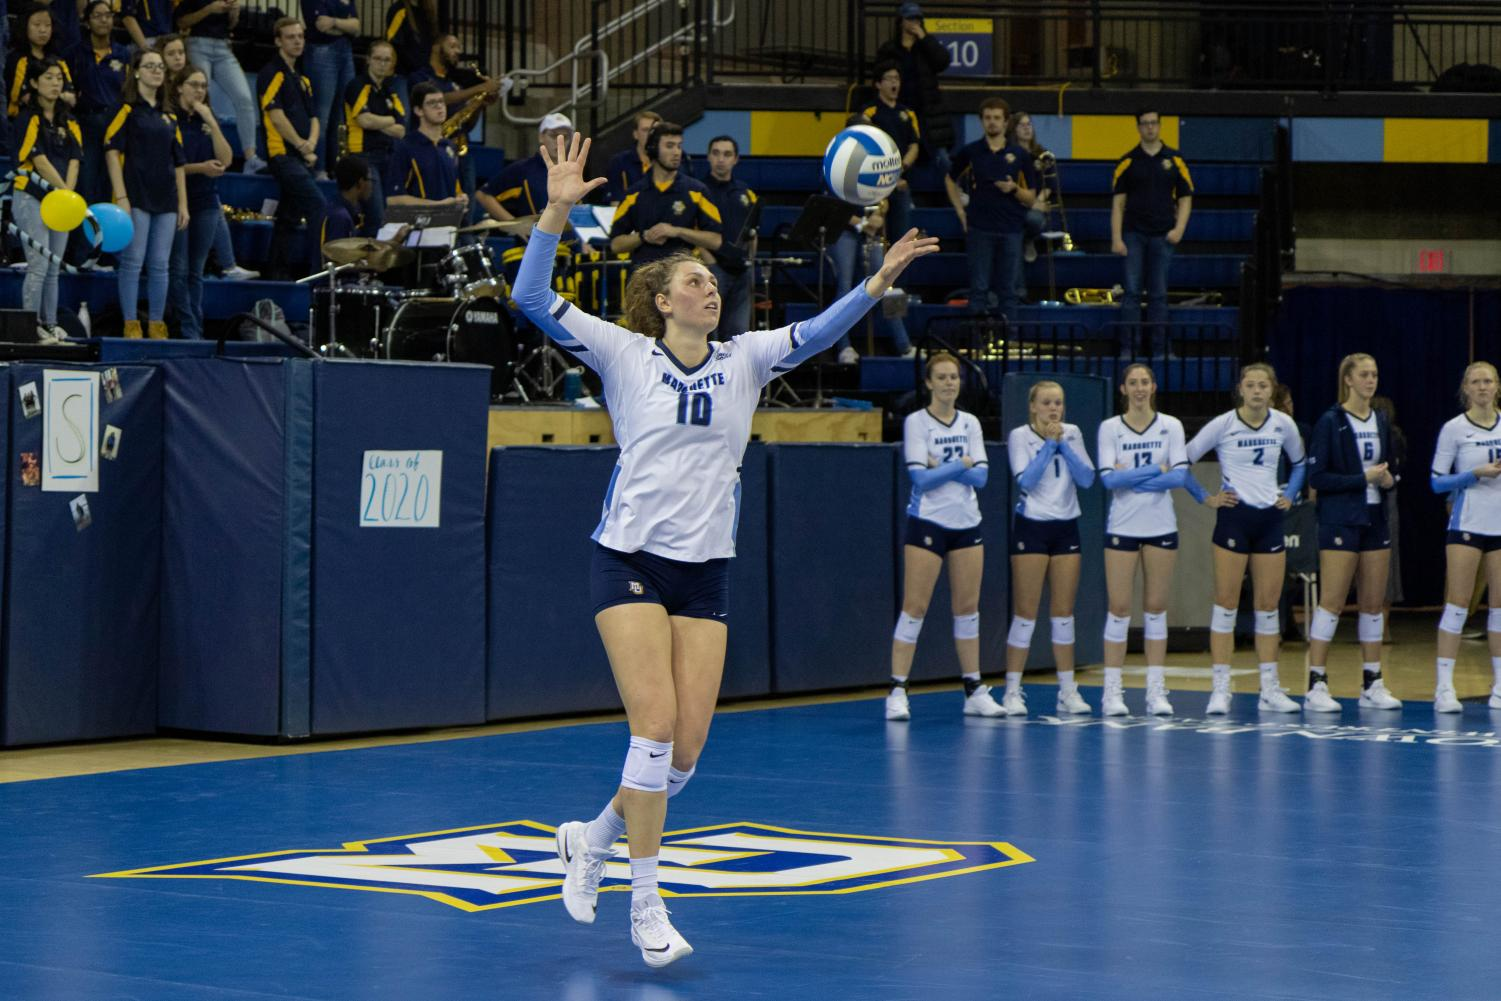 Allie Barber (10) attempts a serve in Marquette's 3-1 win over Villanova at the Al McGuire Center.